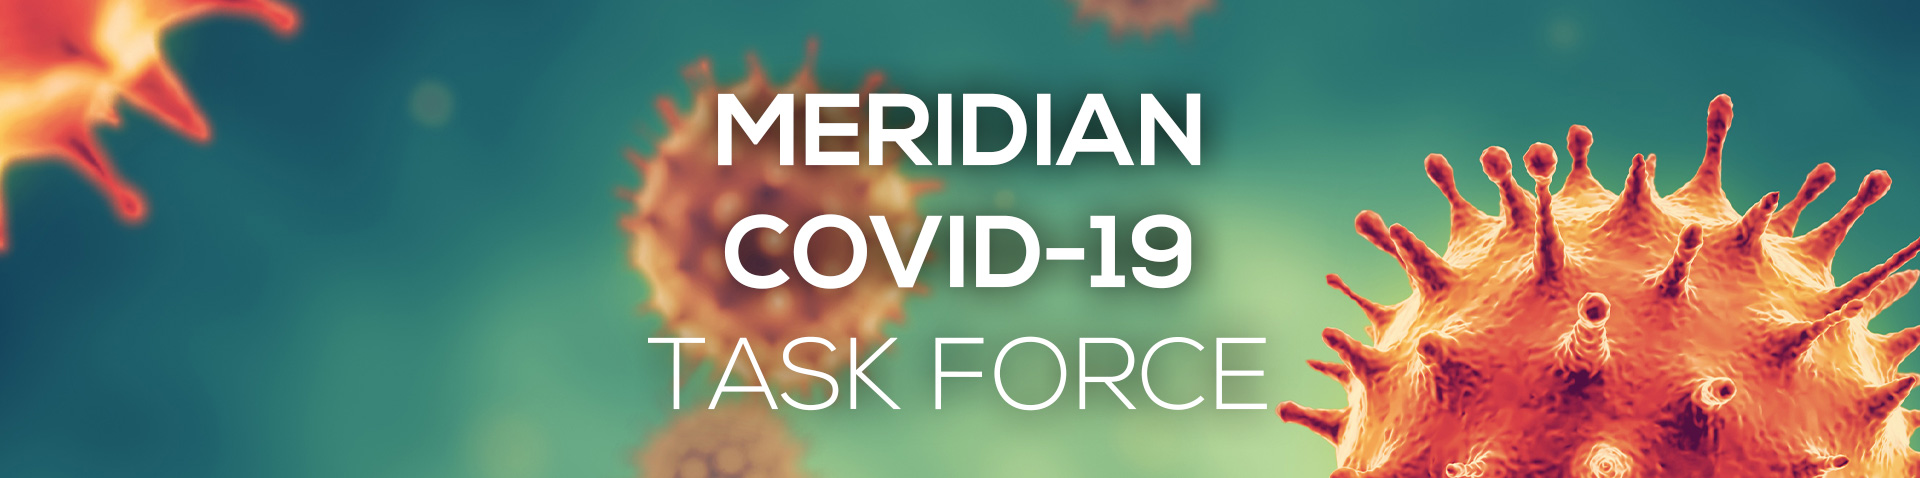 Meridian Coronavirus Task Force secondary website page banner